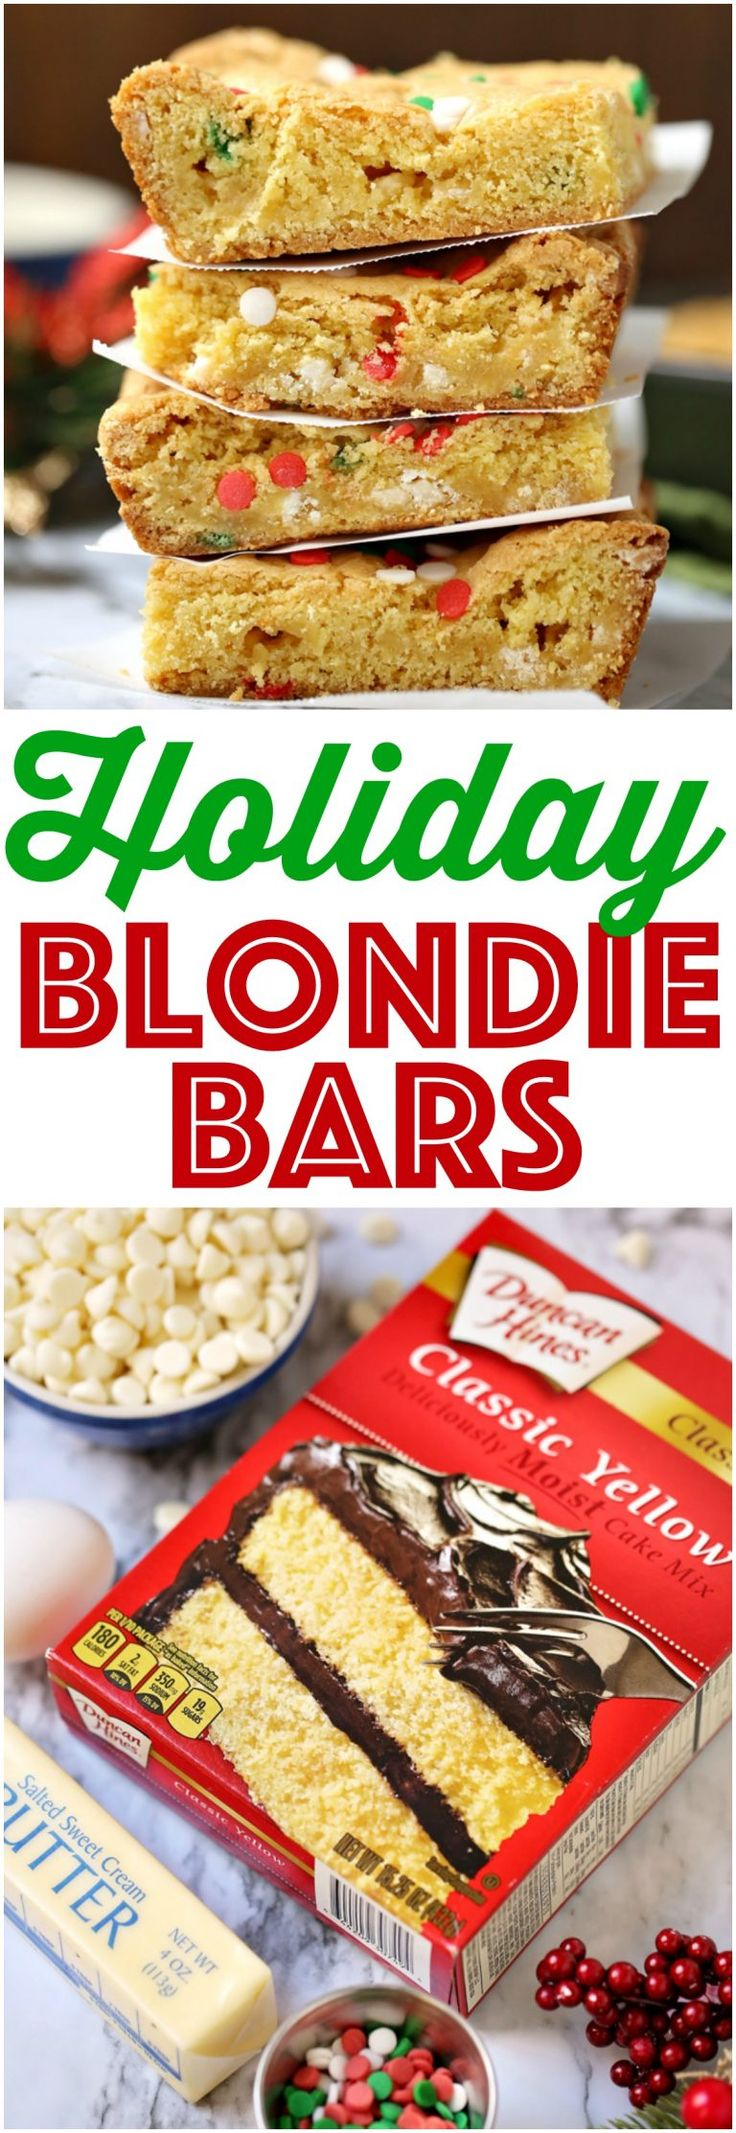 Easy Holiday Blondie Bars recipe from The Country Cook #cakemix #desserts #recipe #ideas #holiday #Christmas #cookieexchange